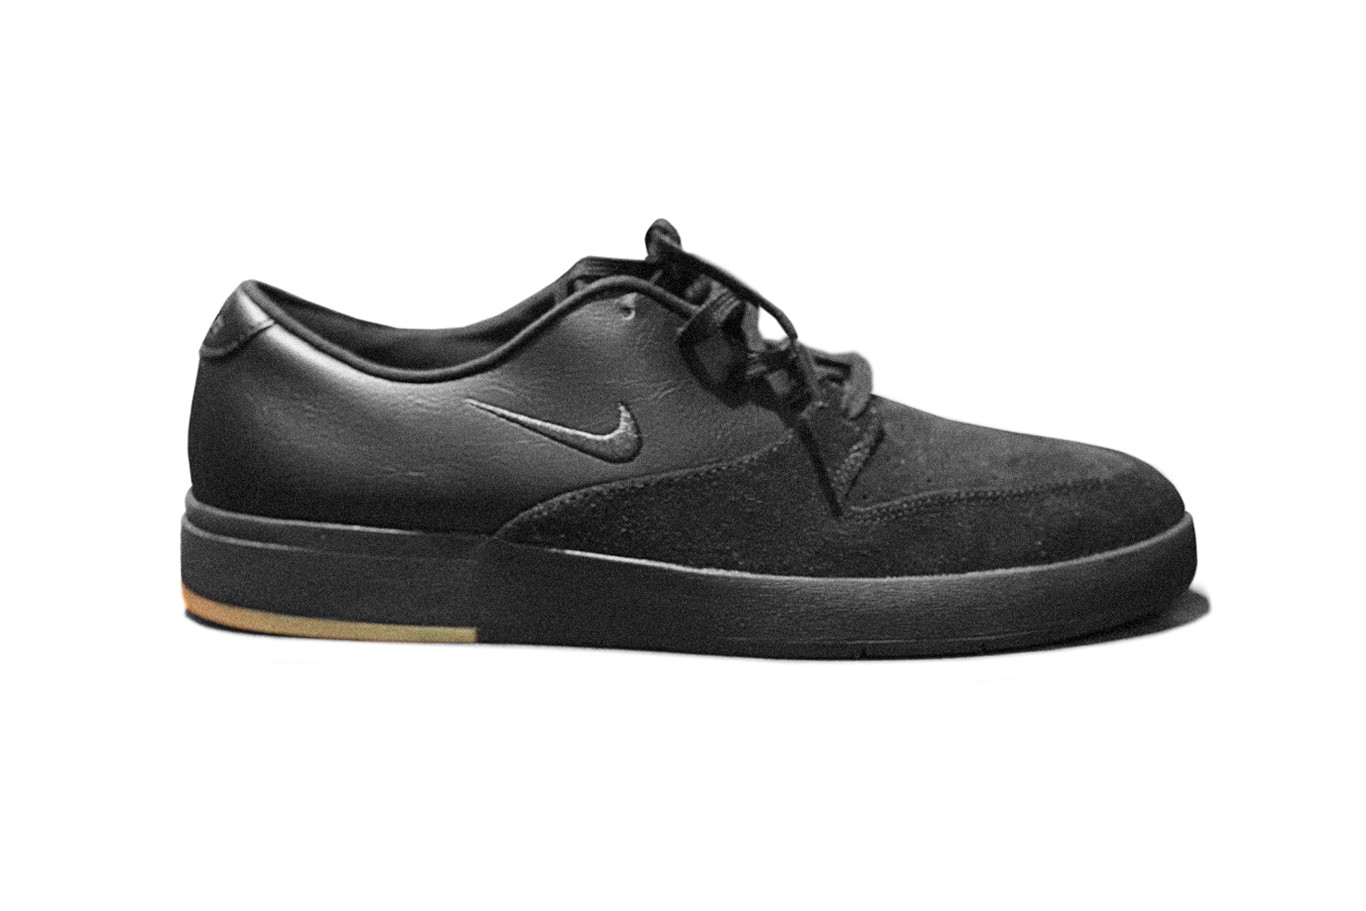 Nike SB P-ROD 10 Releases Two New